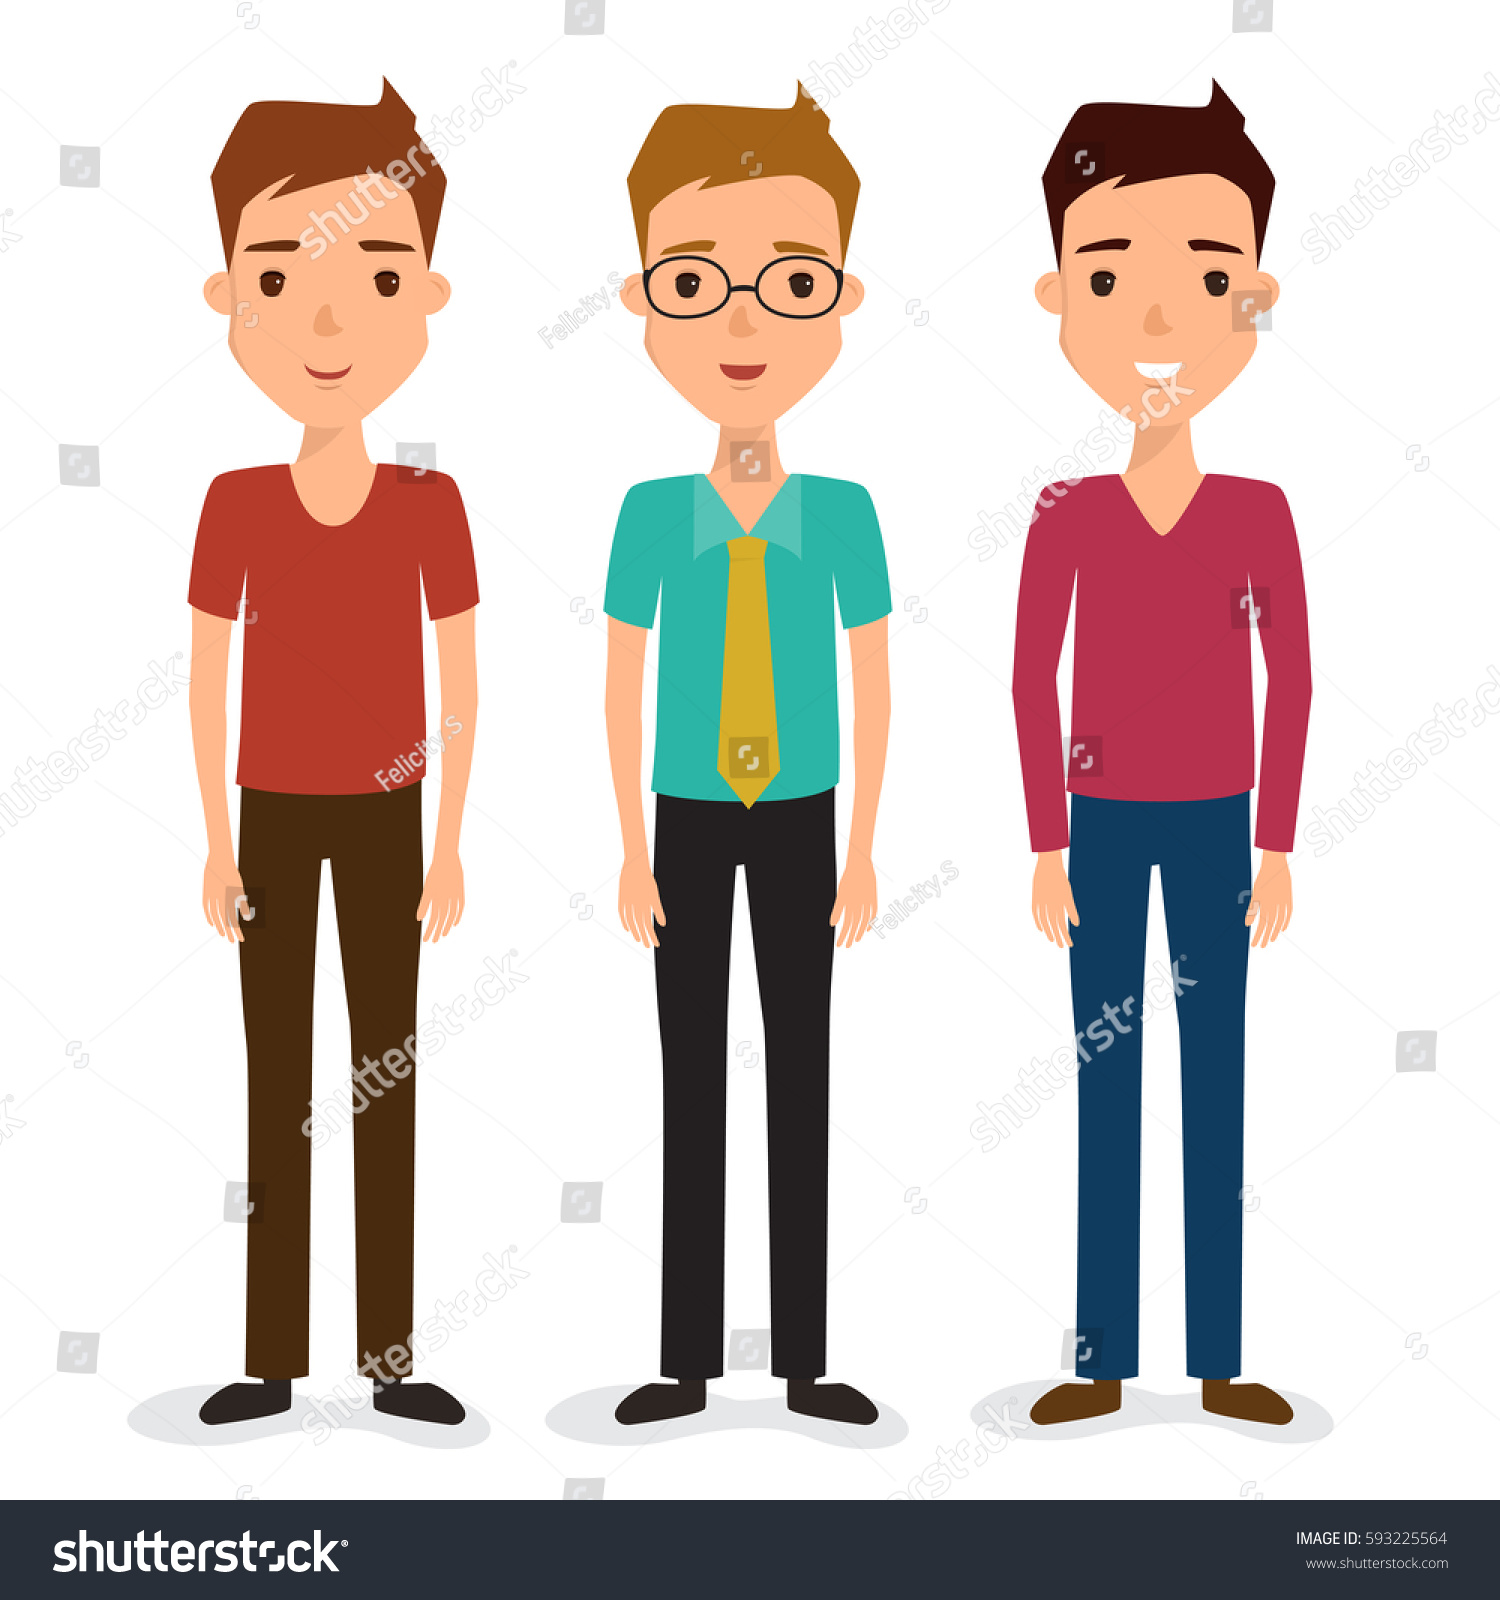 Character Design Careers : Business man character job avatar people stock vector